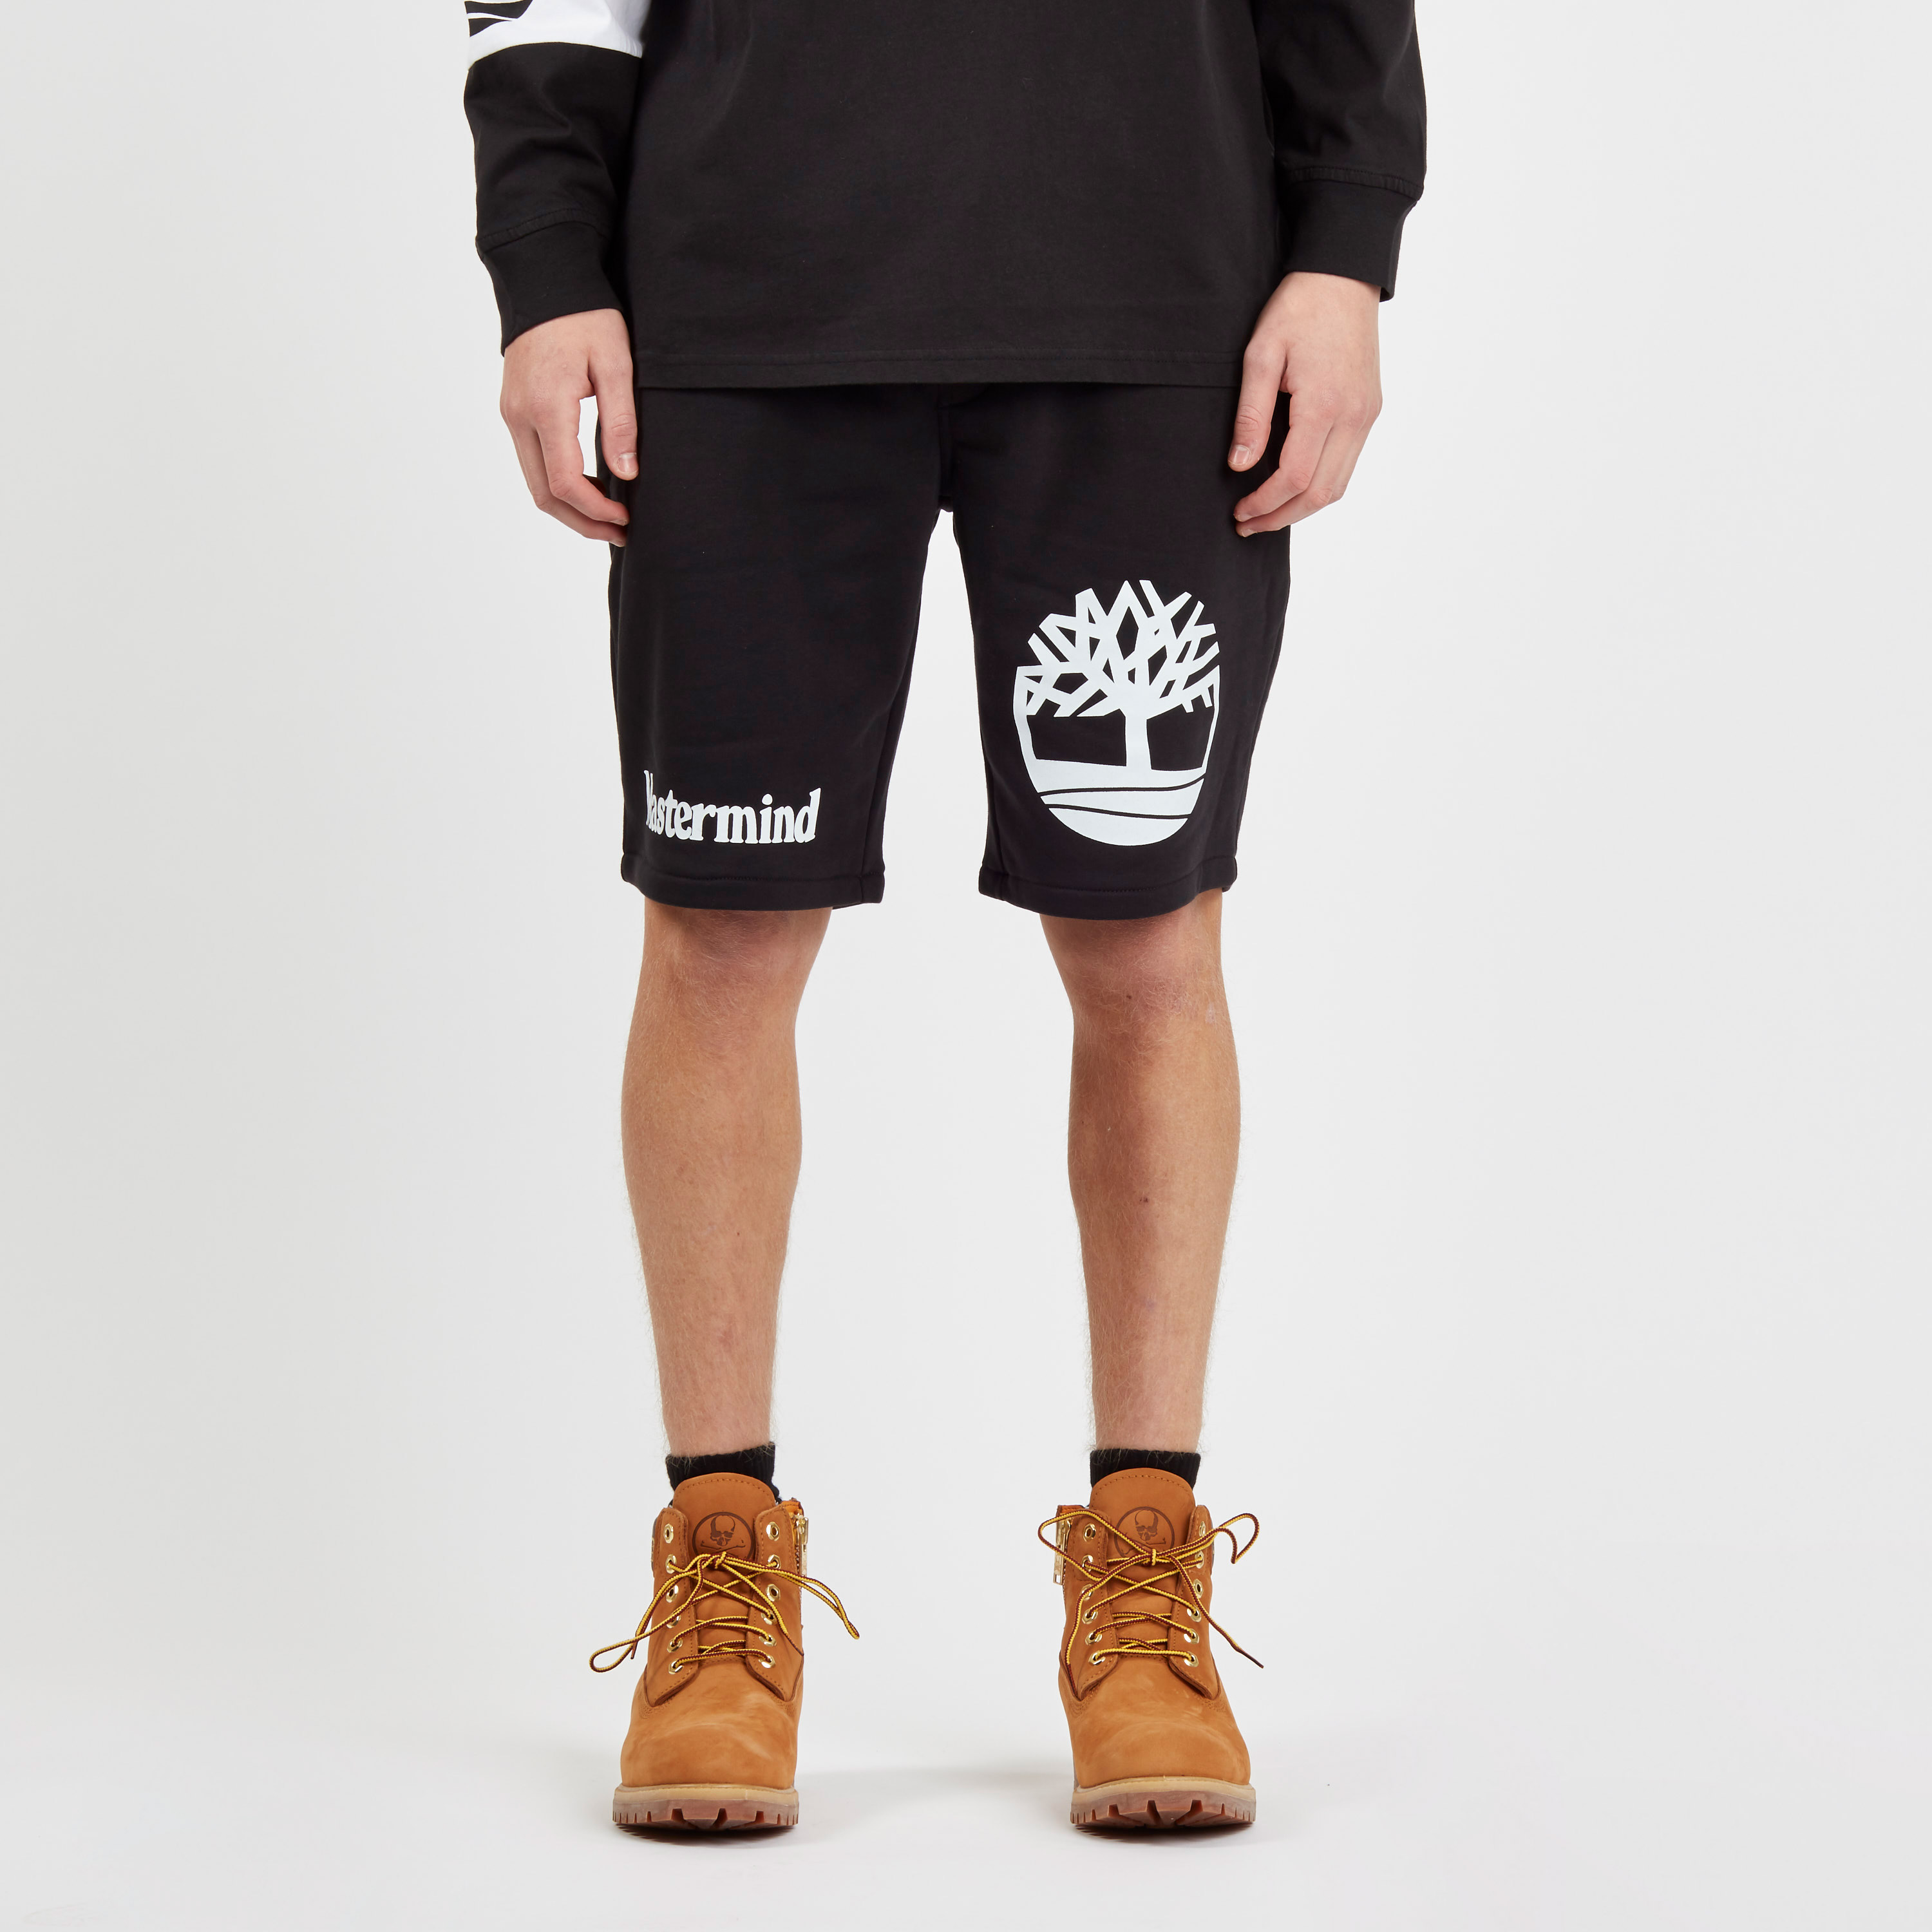 1abbef9a4 Timberland MASTERMIND Sweat Short - A1nqm-001 - Sneakersnstuff ...